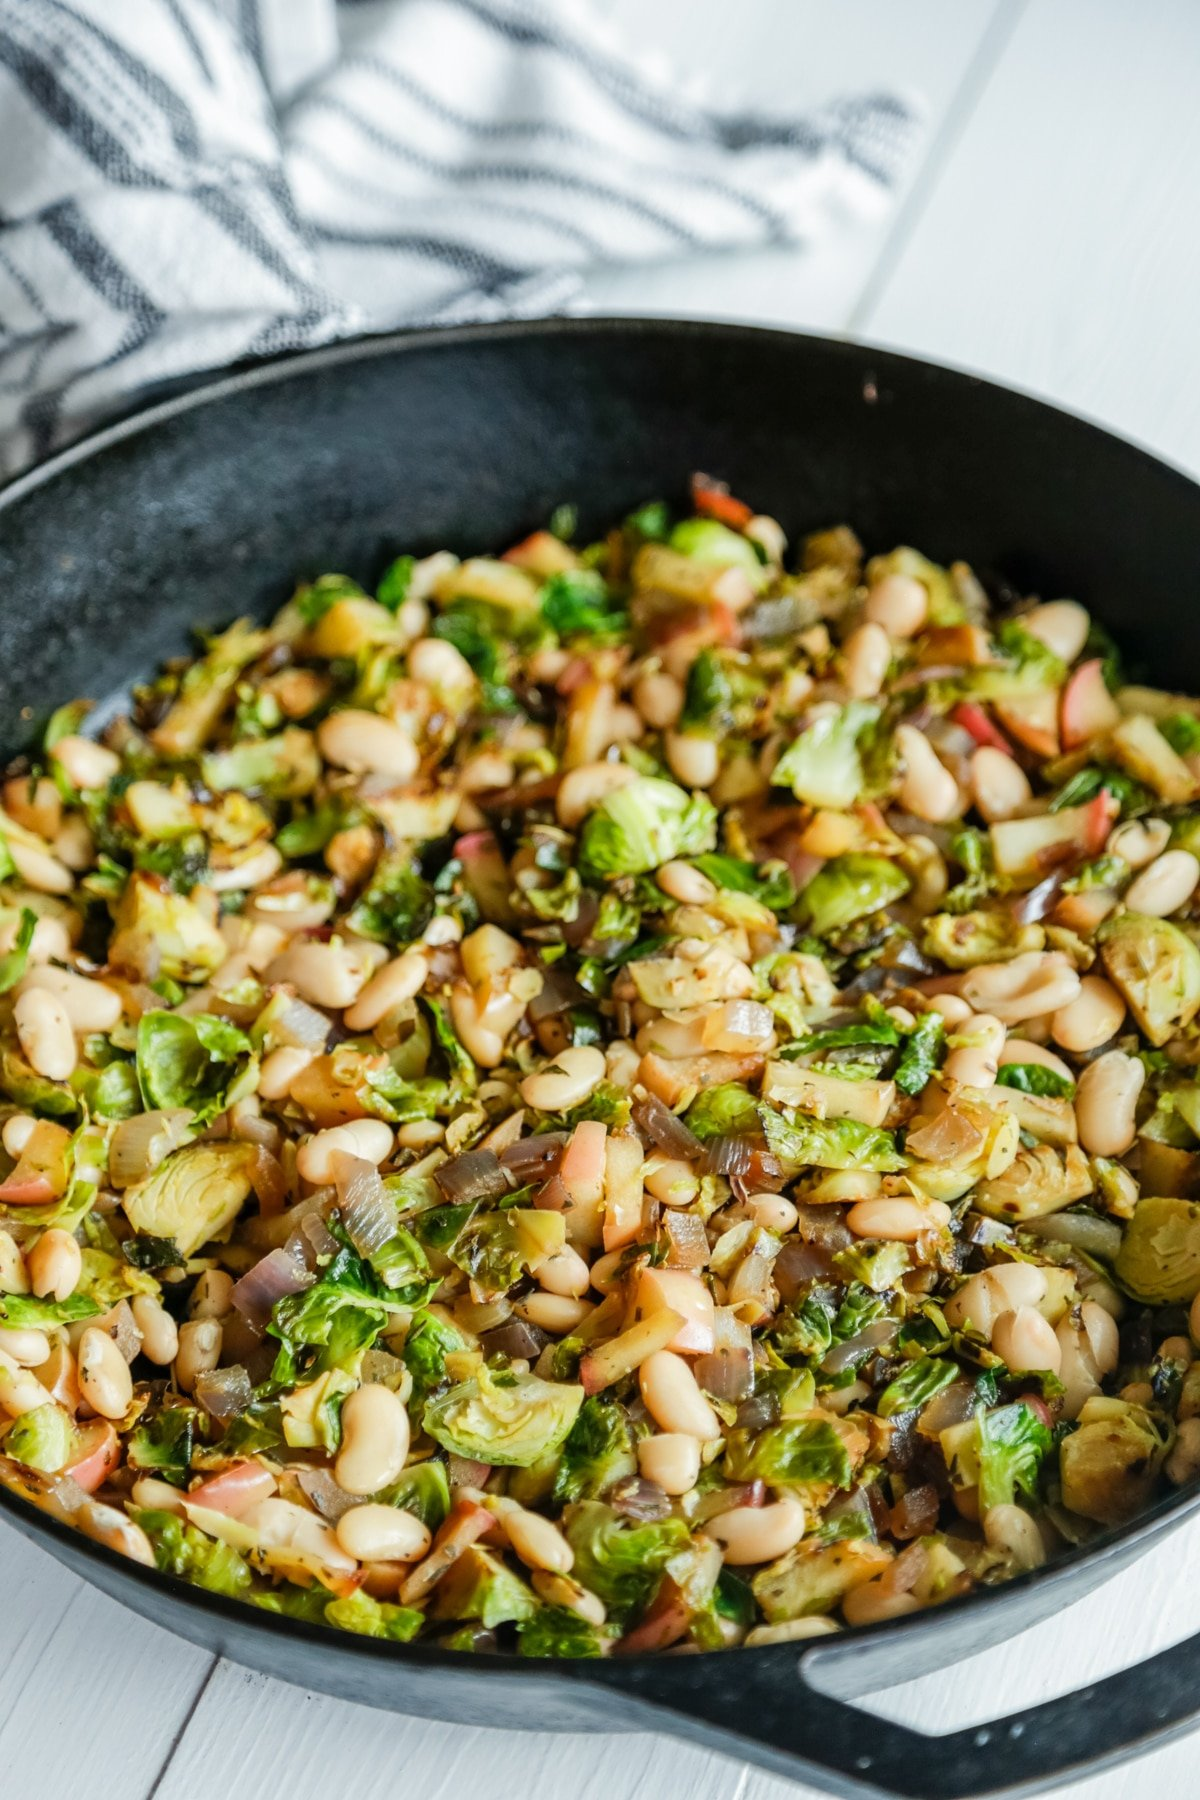 An iron skillet with Brussels sprouts, apple, and cannellini beans.